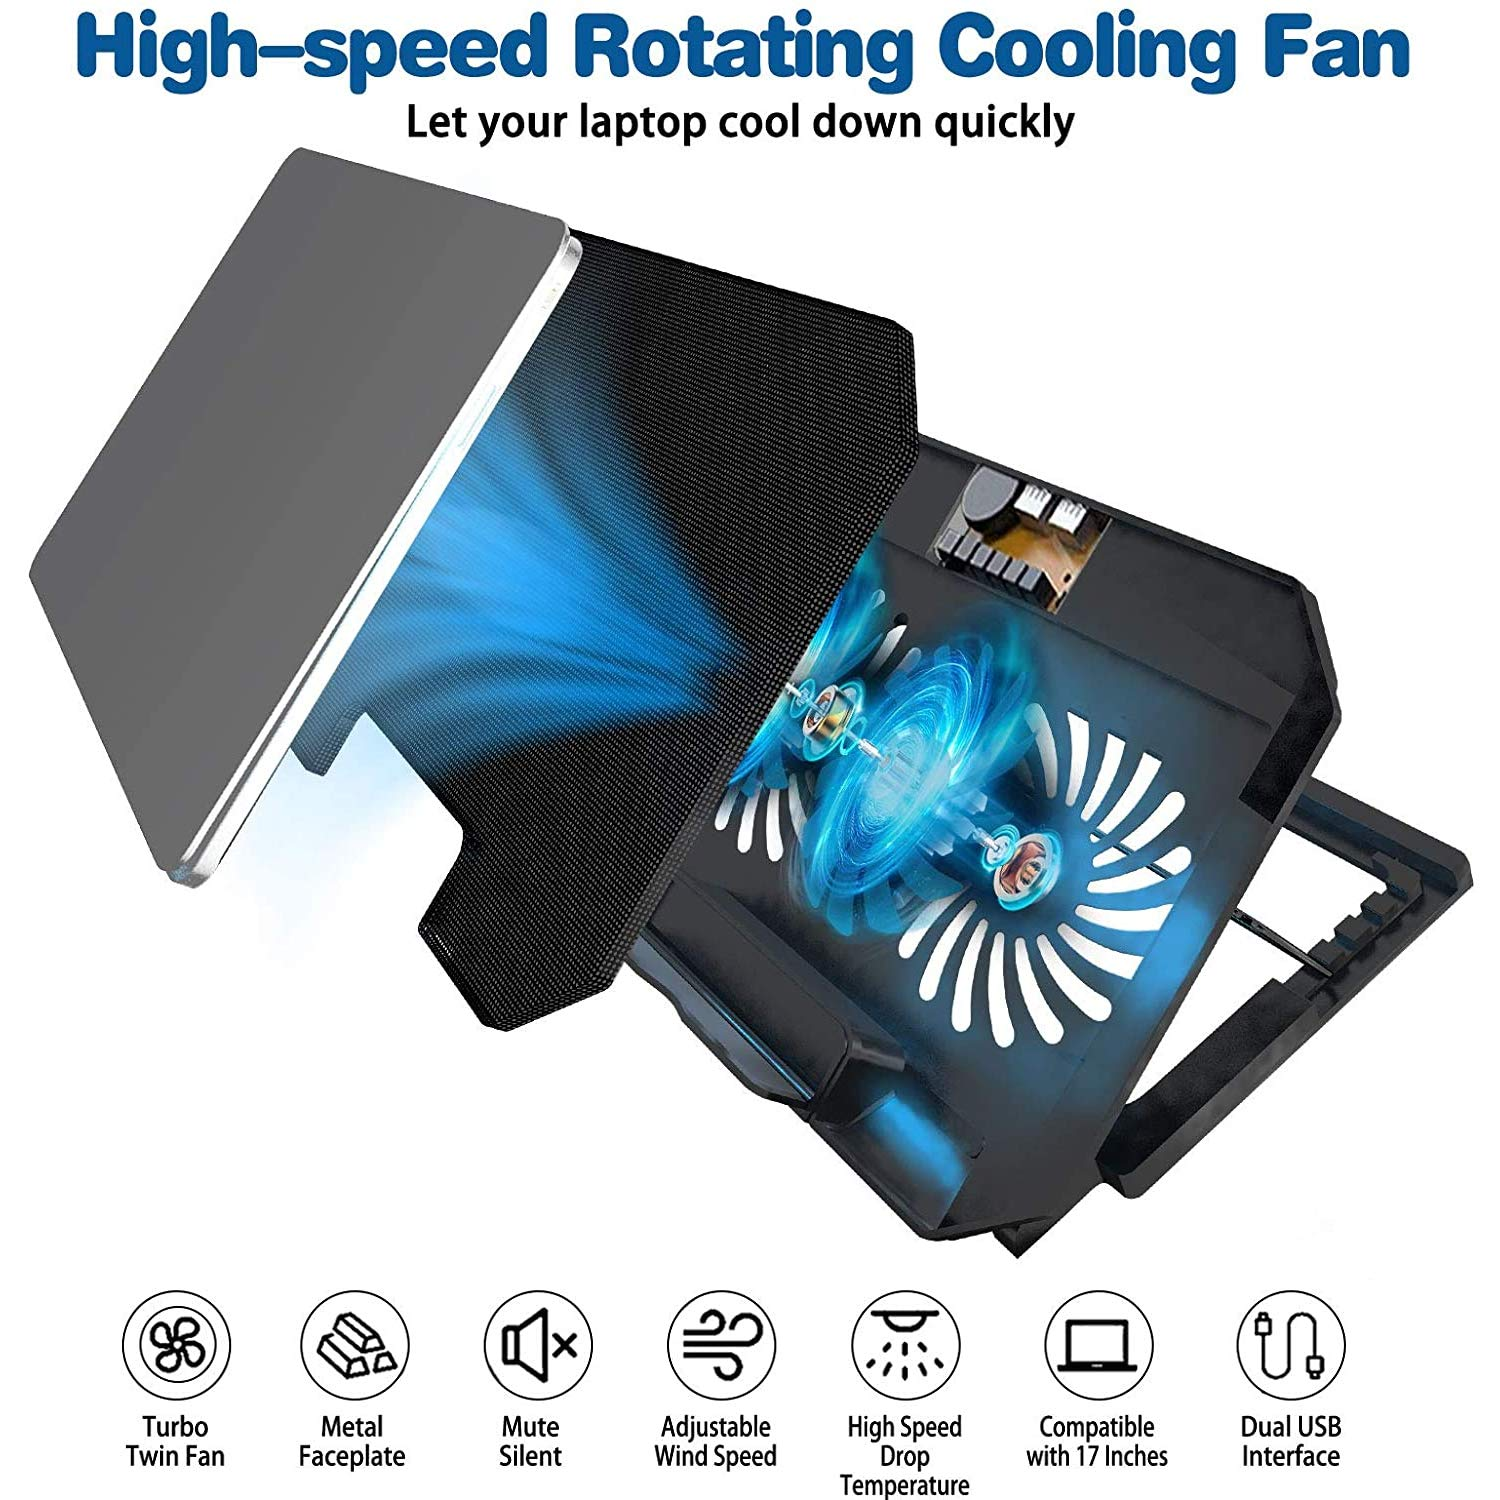 Zinq Cool Slate 2 laptop fan